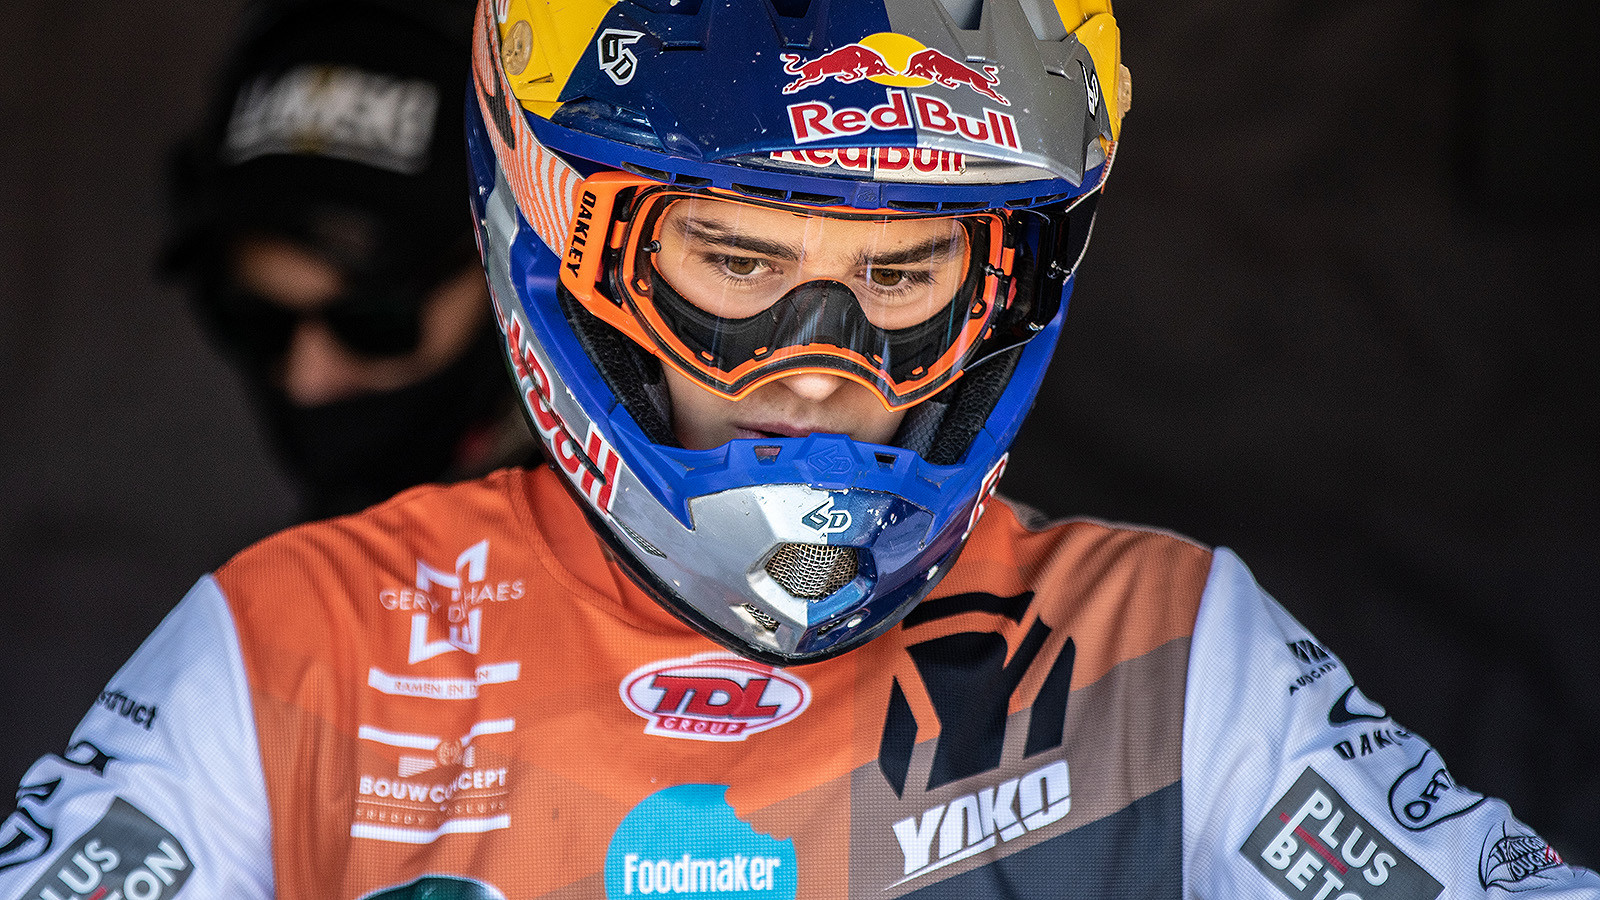 Liam Everts looks forward to EMX250 race in Lommel